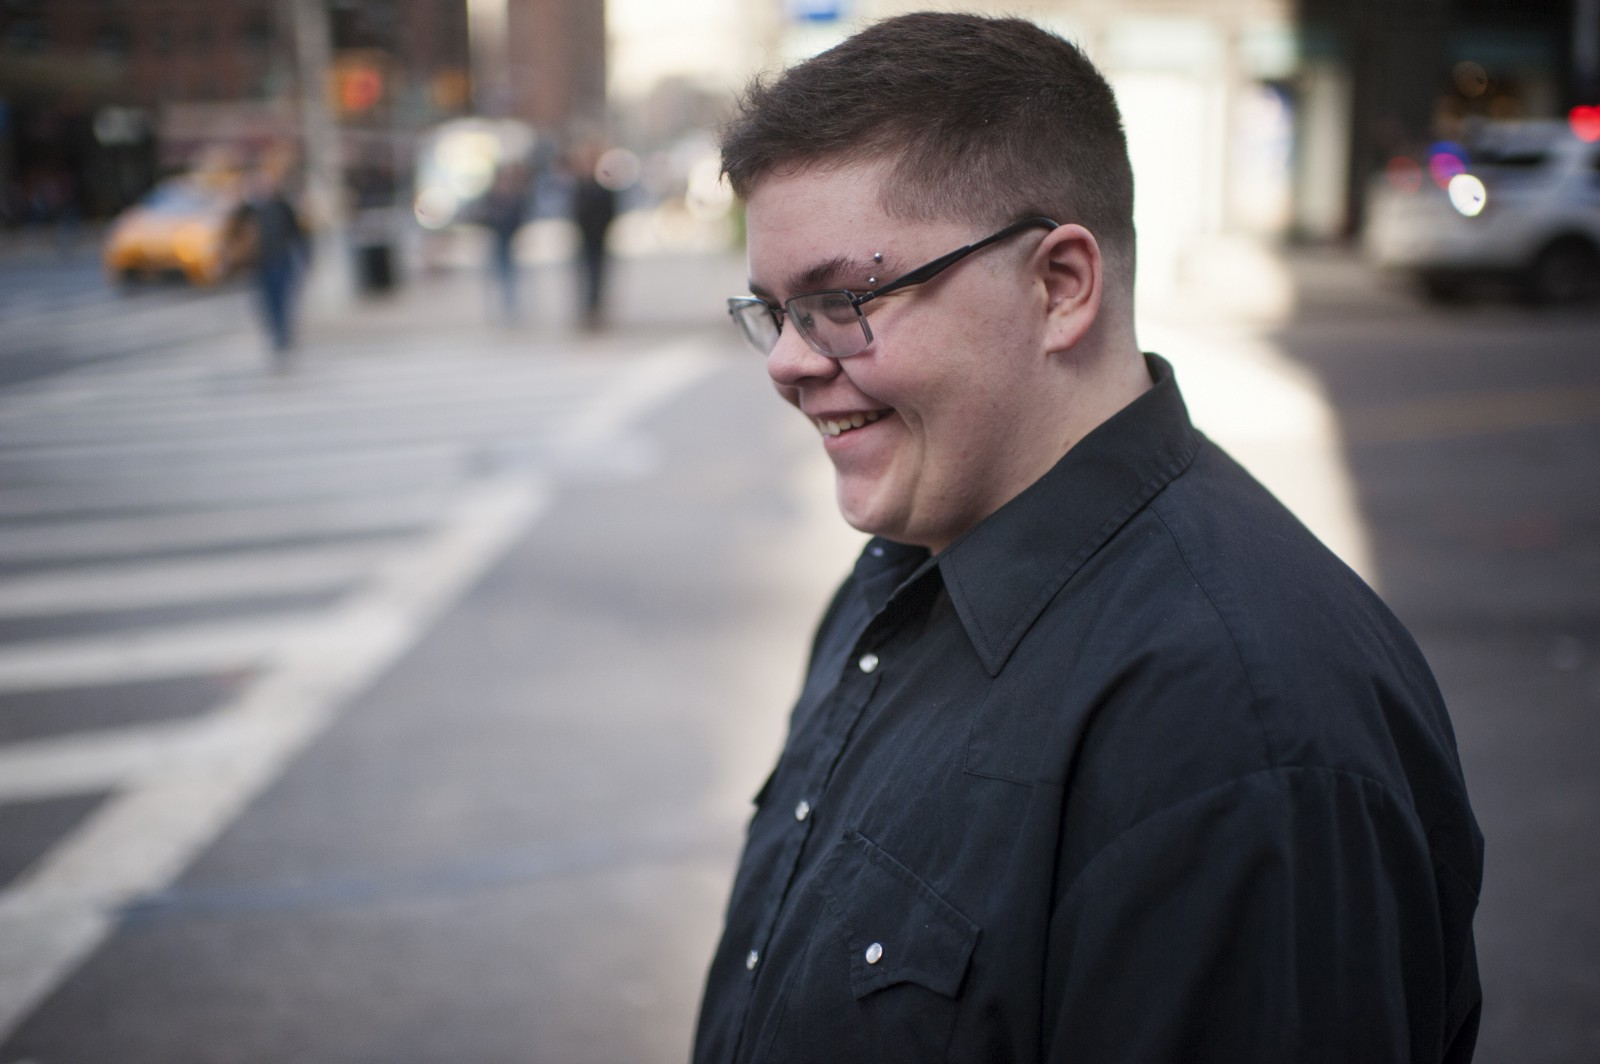 Americans Overwhelmingly Support Gavin Grimm And Transgender